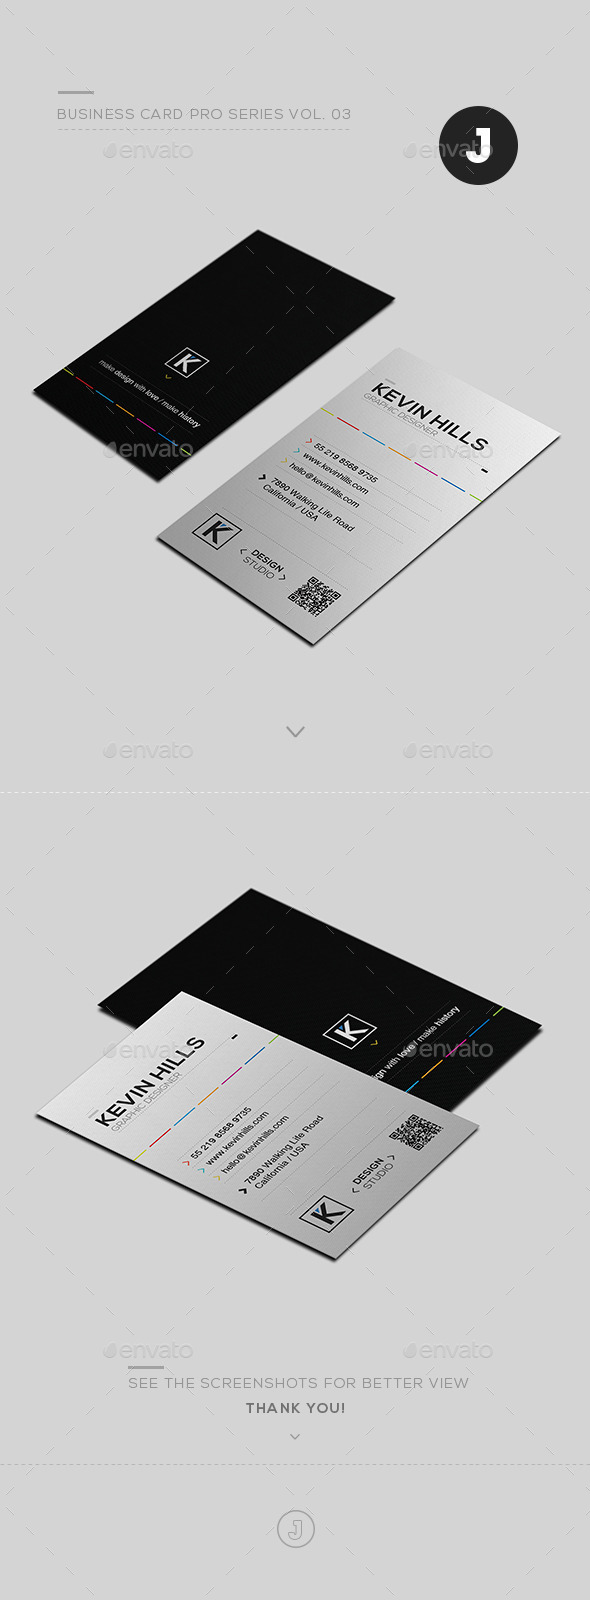 Business Card Pro Series Vol. 03 - Creative Business Cards